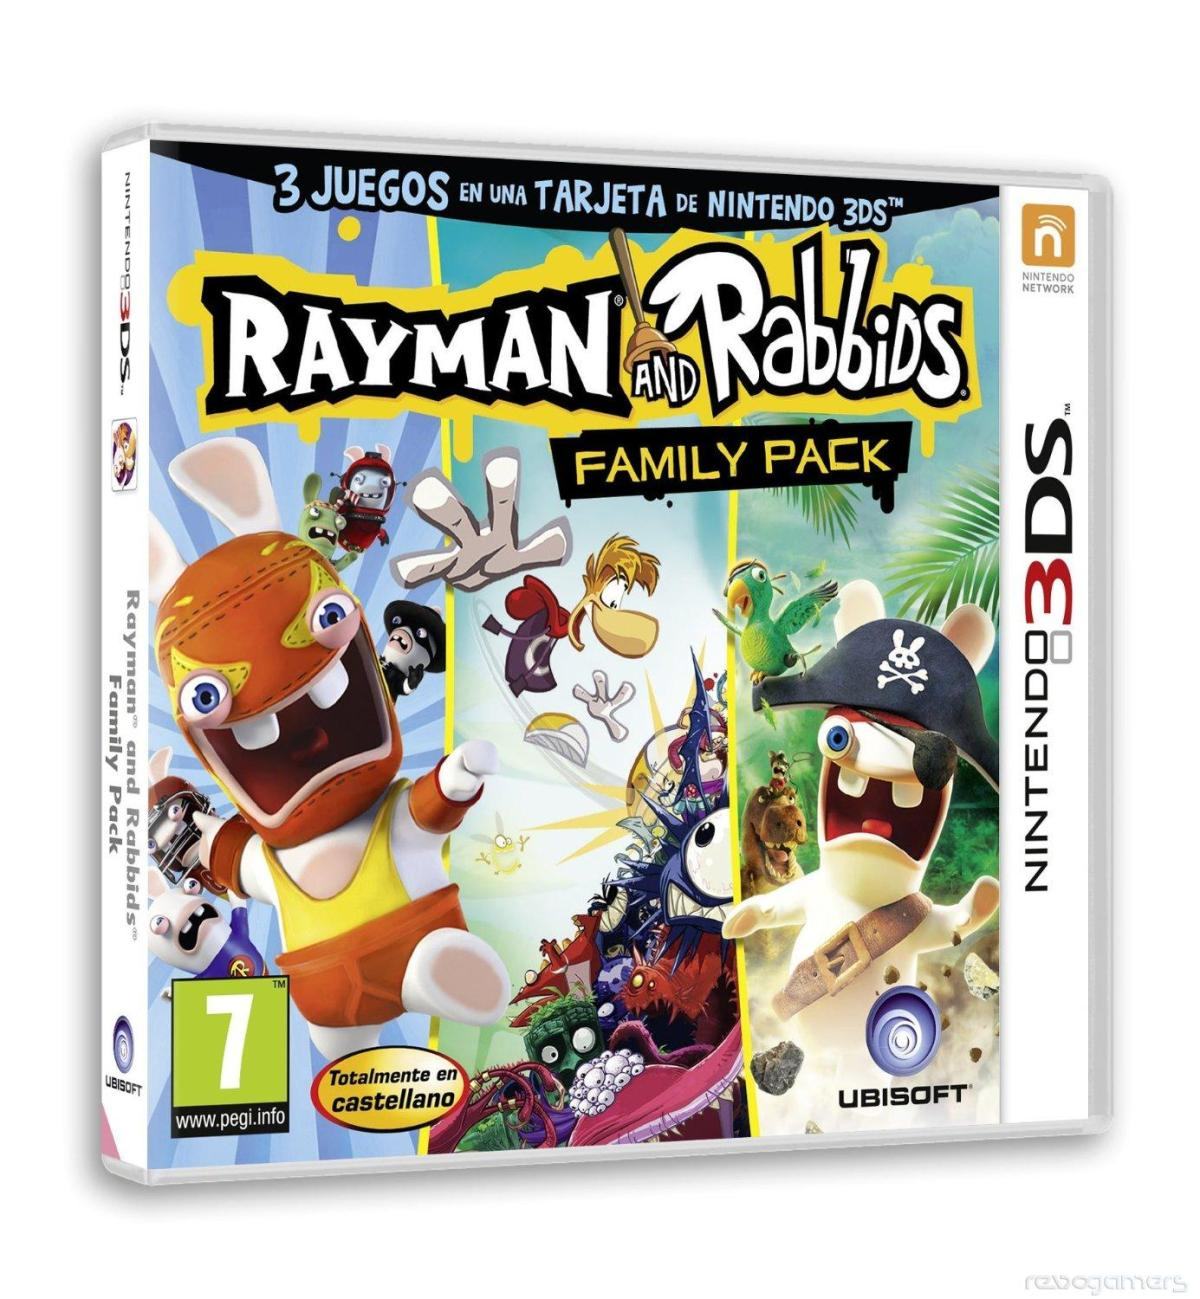 Rayman 3DS Collection Is Actually Rayman Origins, Rabbids Rumble And Rabbids Travel in Time3D